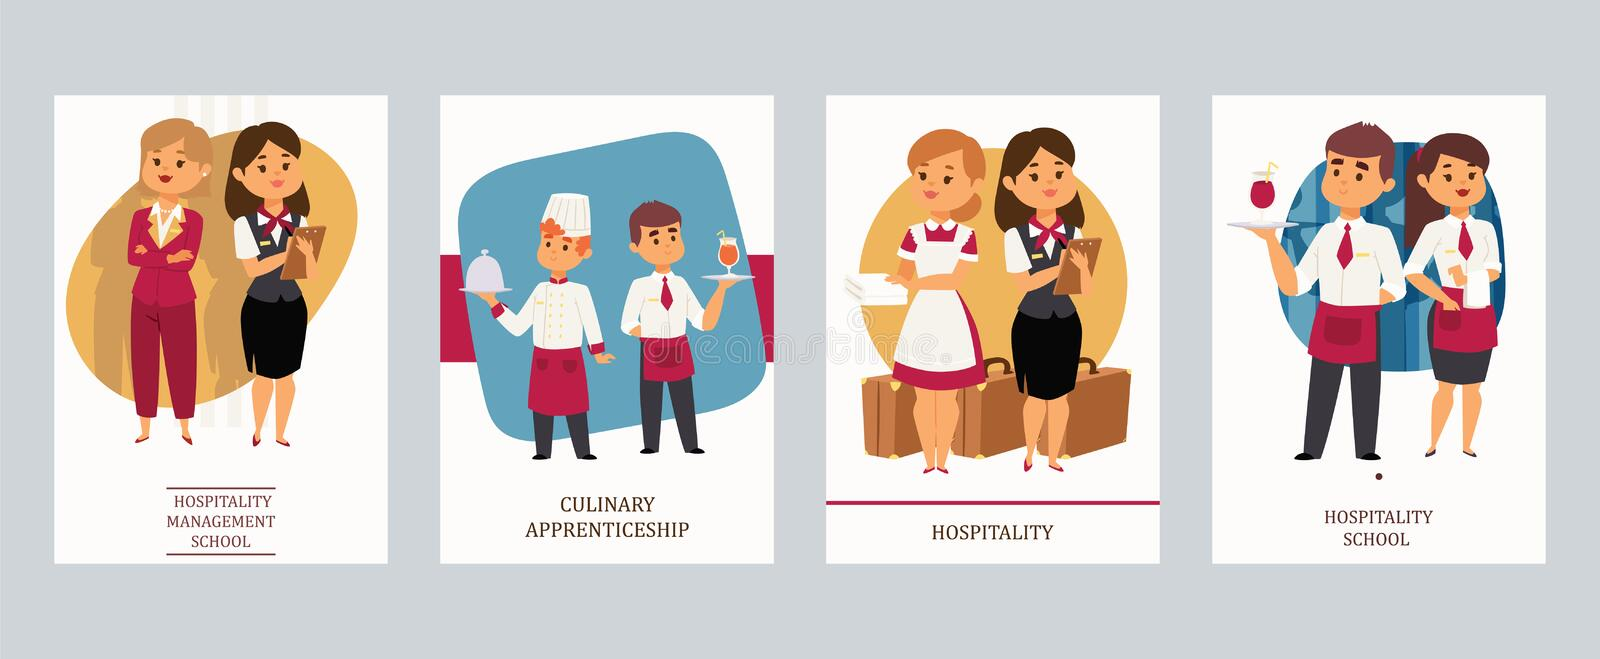 Culinary arts or hospitality school vector Illustration. Cards with hotel staff, meneger and assistant, chef and waiter. Culinary Aarts or hospitality school vector illustration